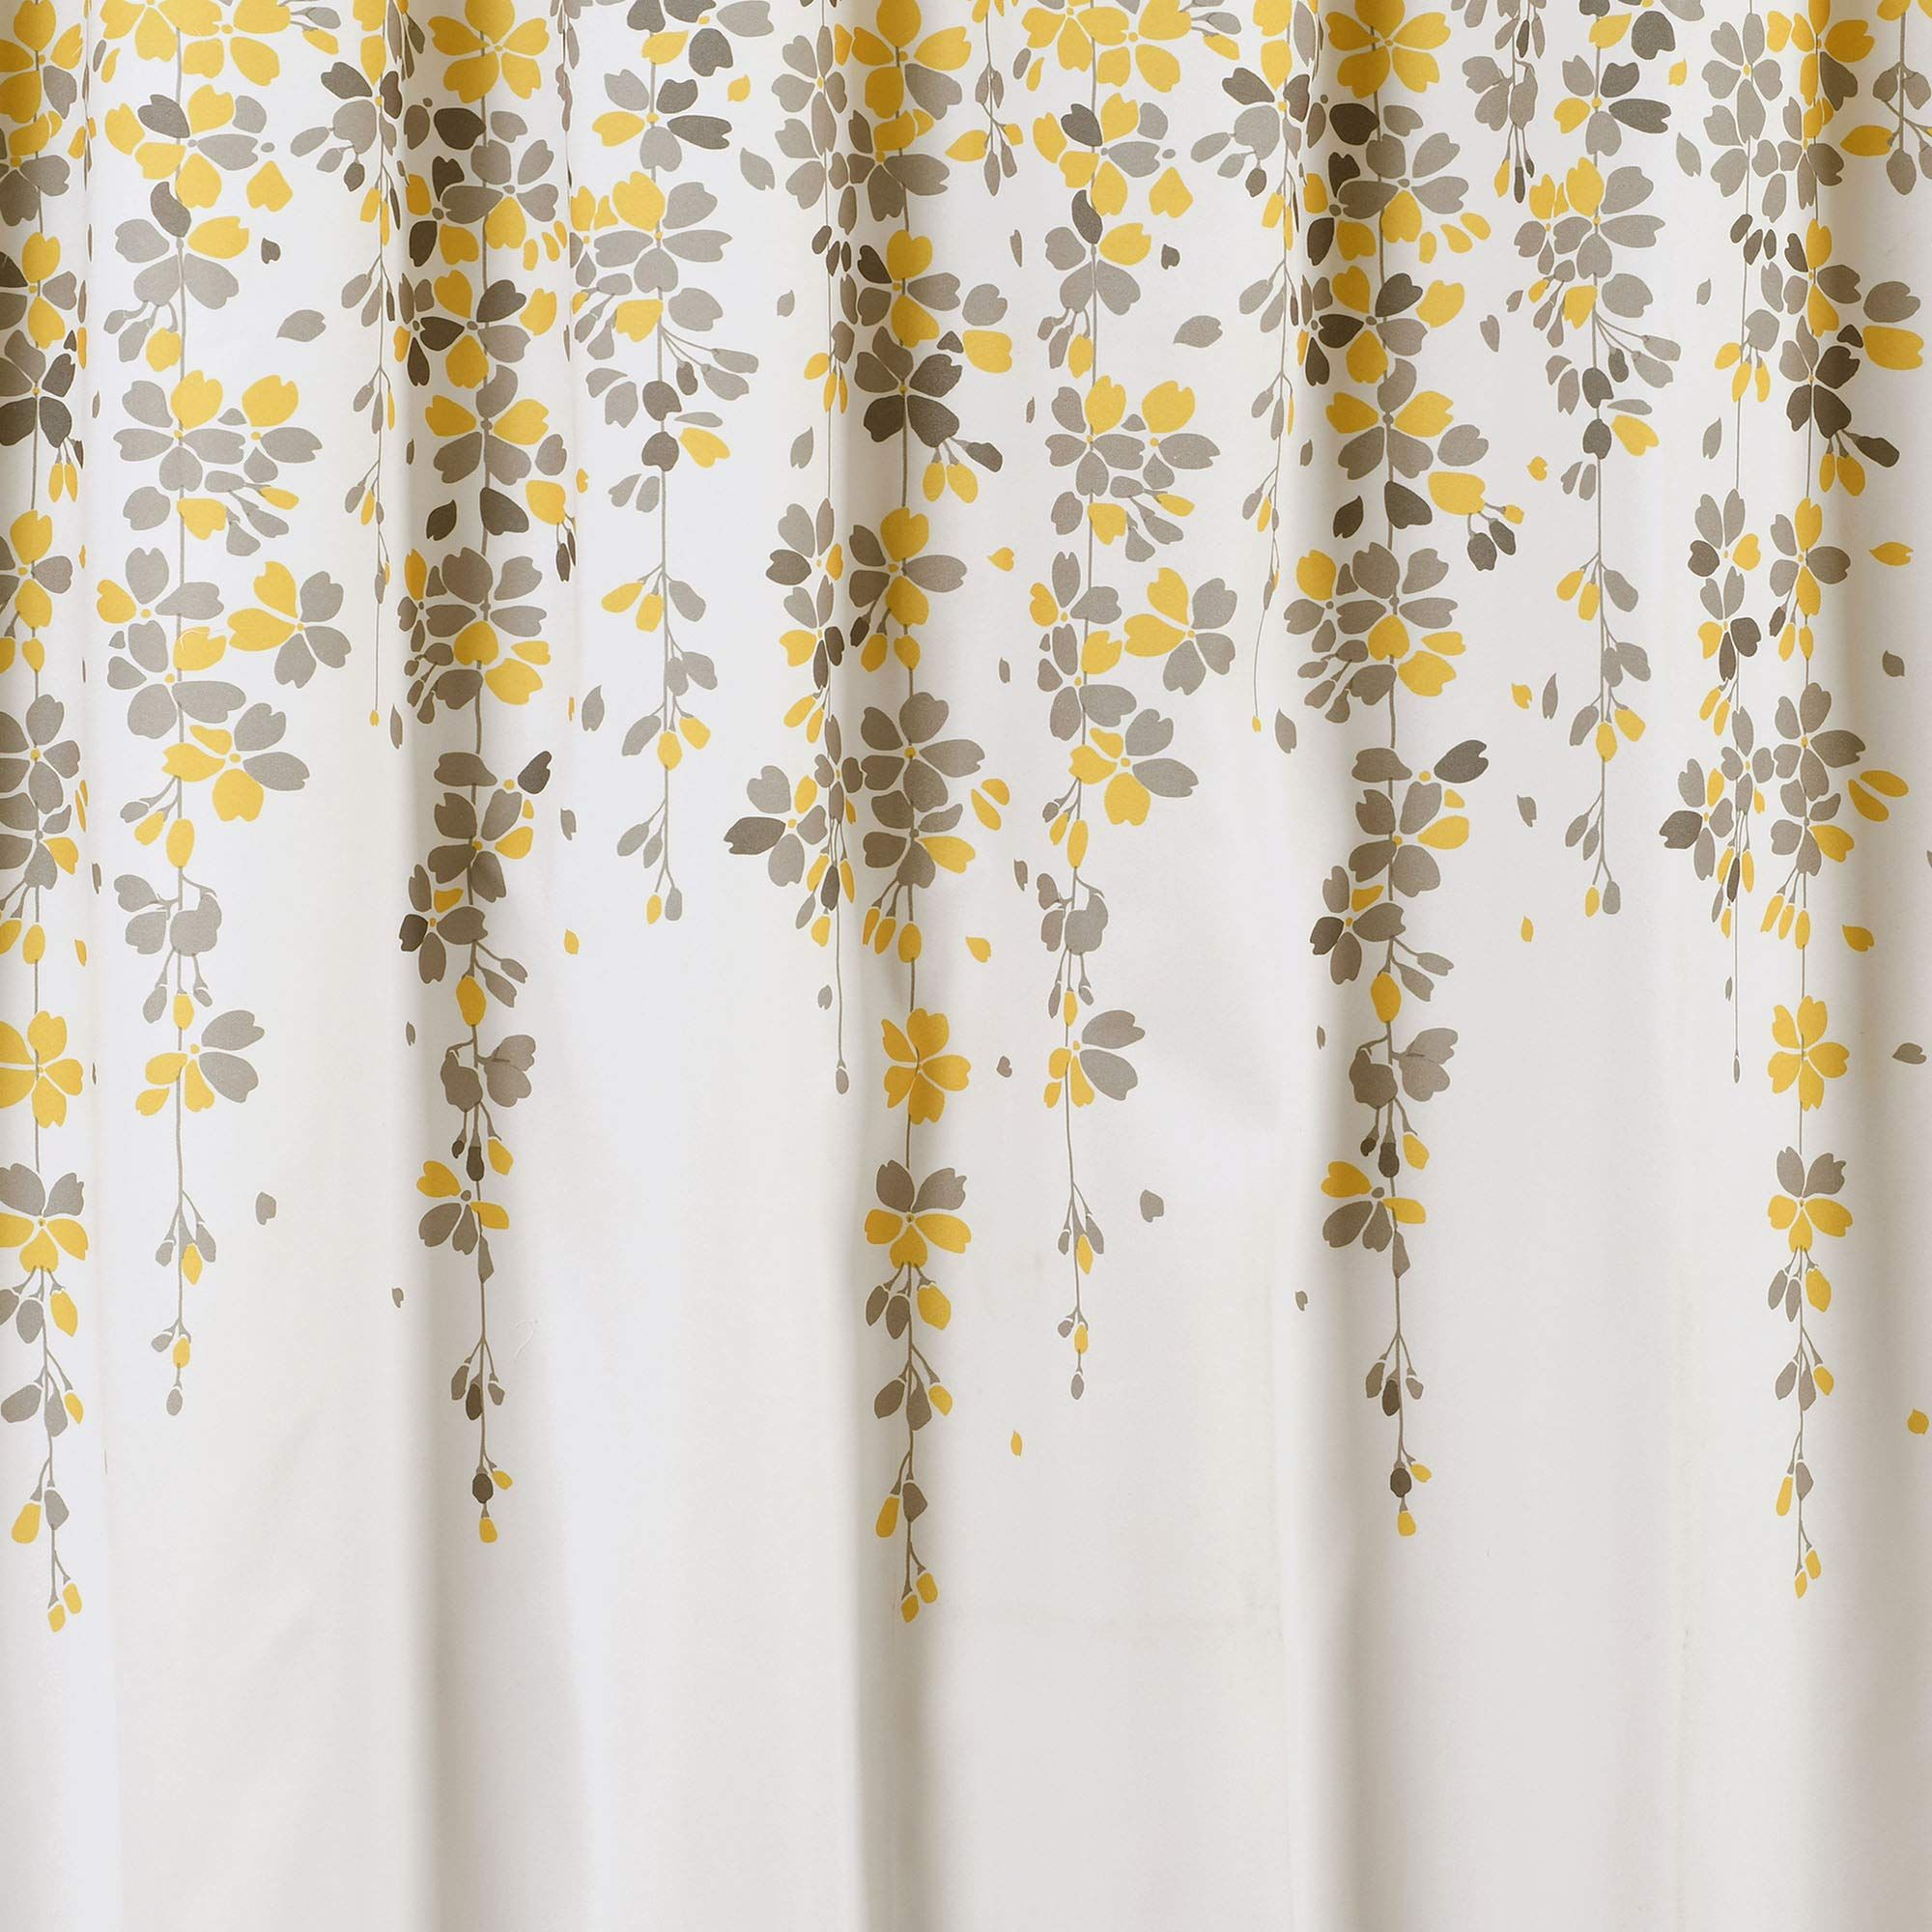 Lush Decor Weeping Flower Shower Curtain Fabric Floral Vine Print